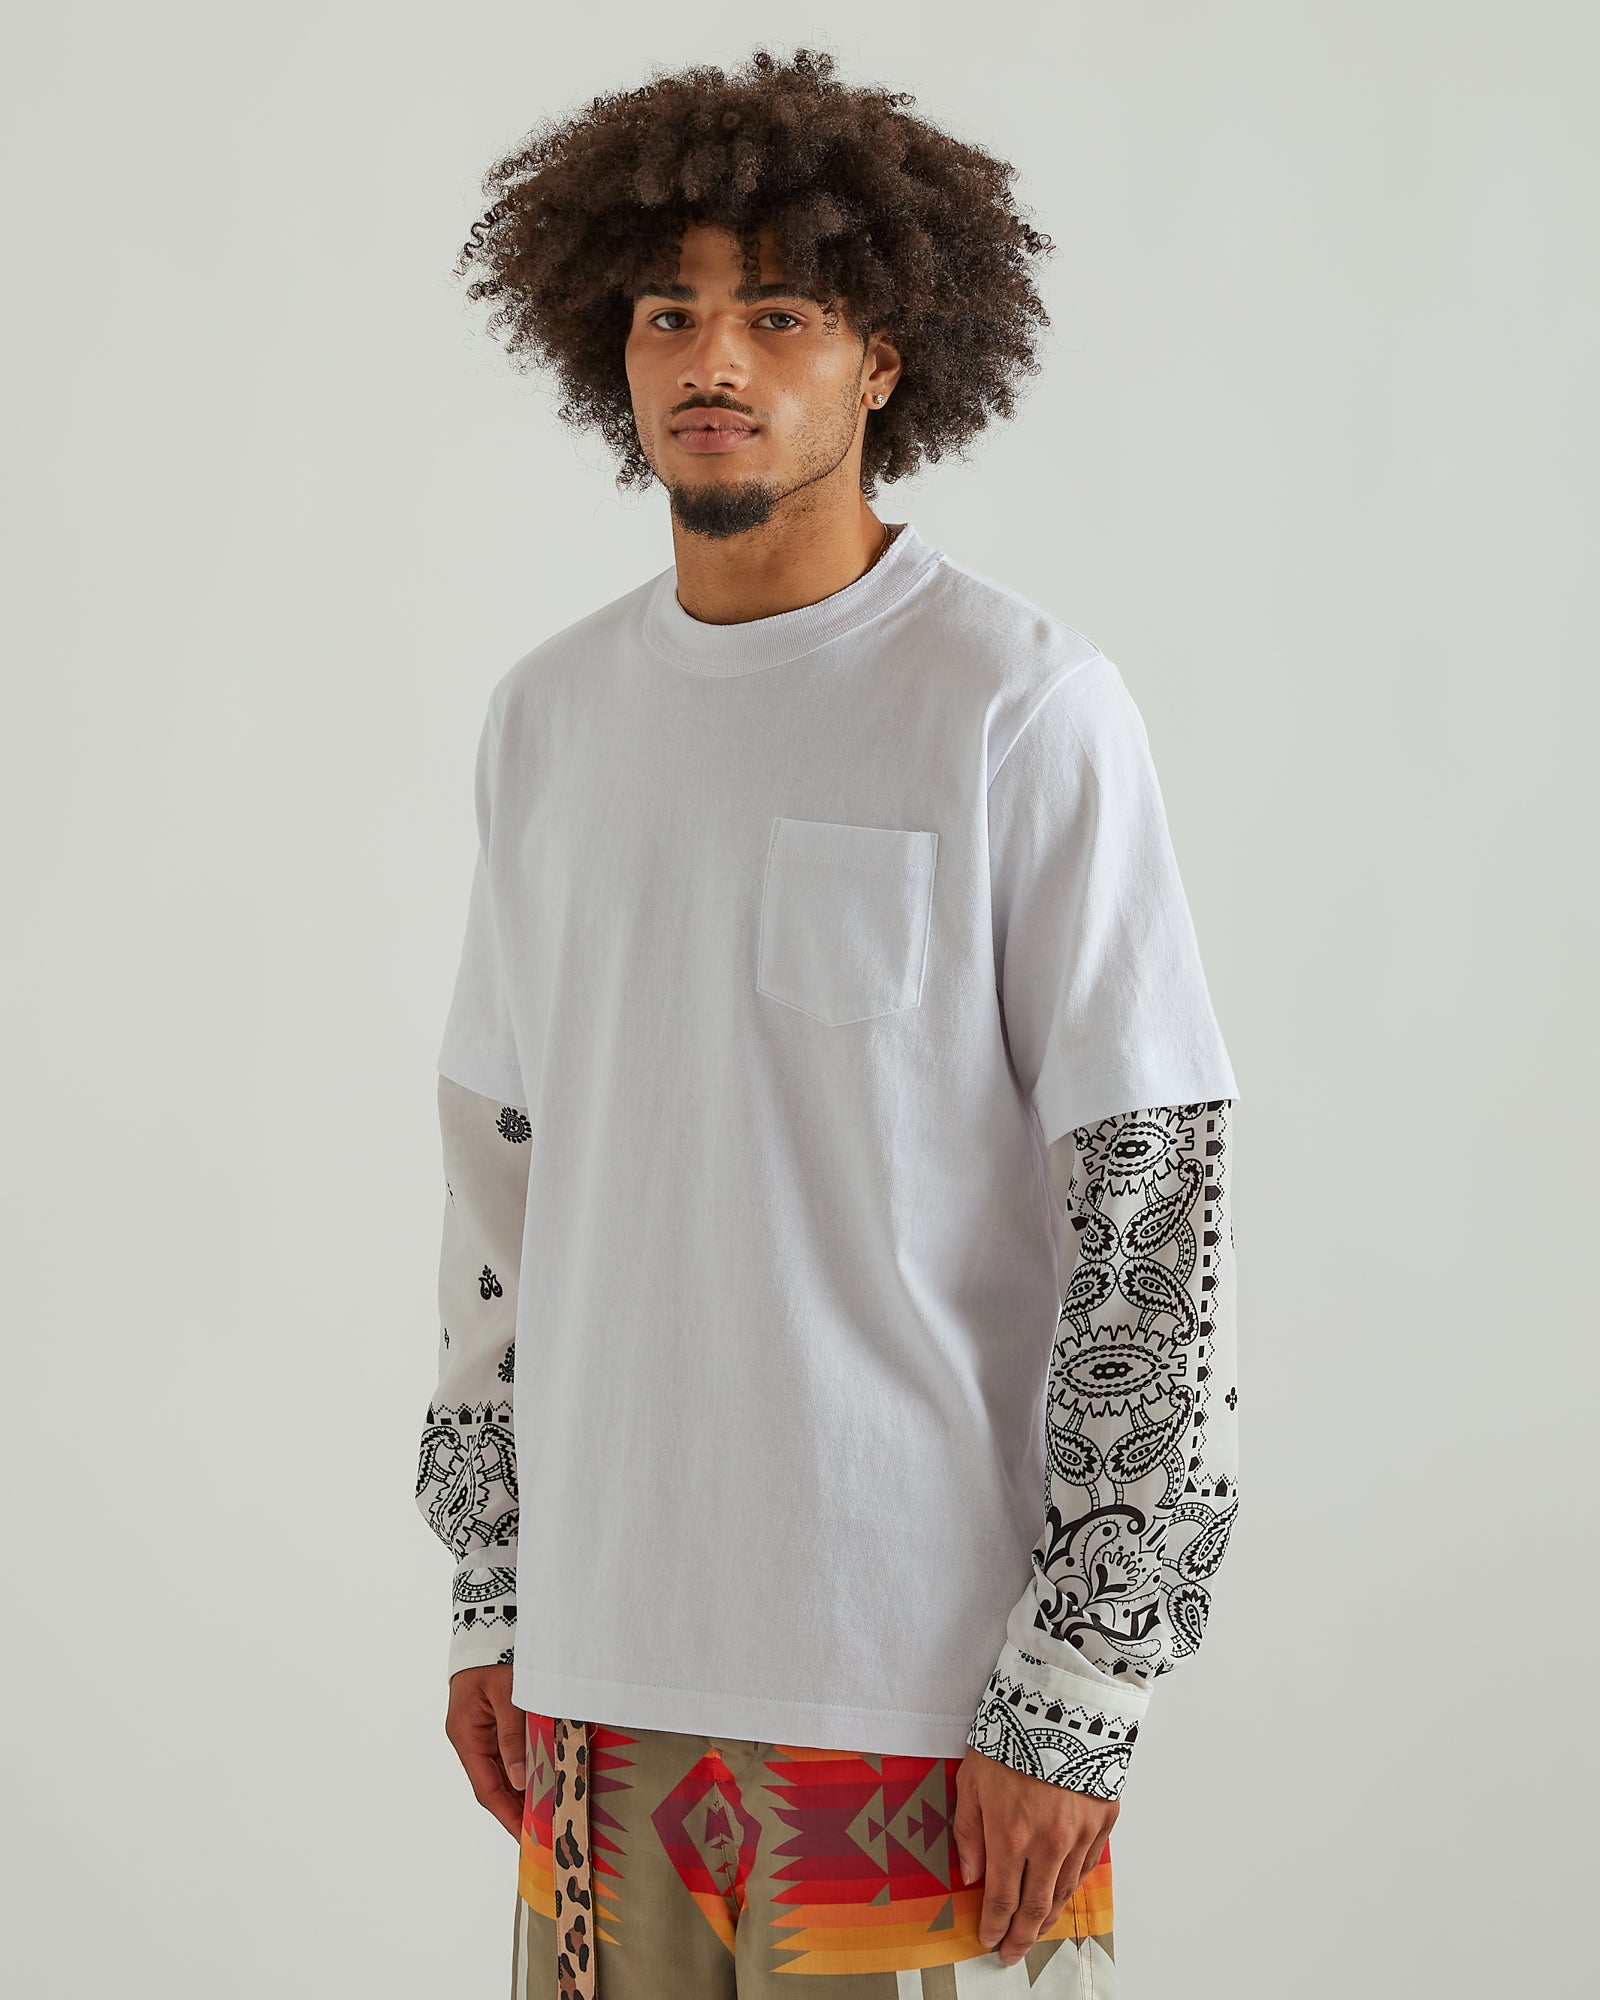 Archive Print L/S T-Shirt in White